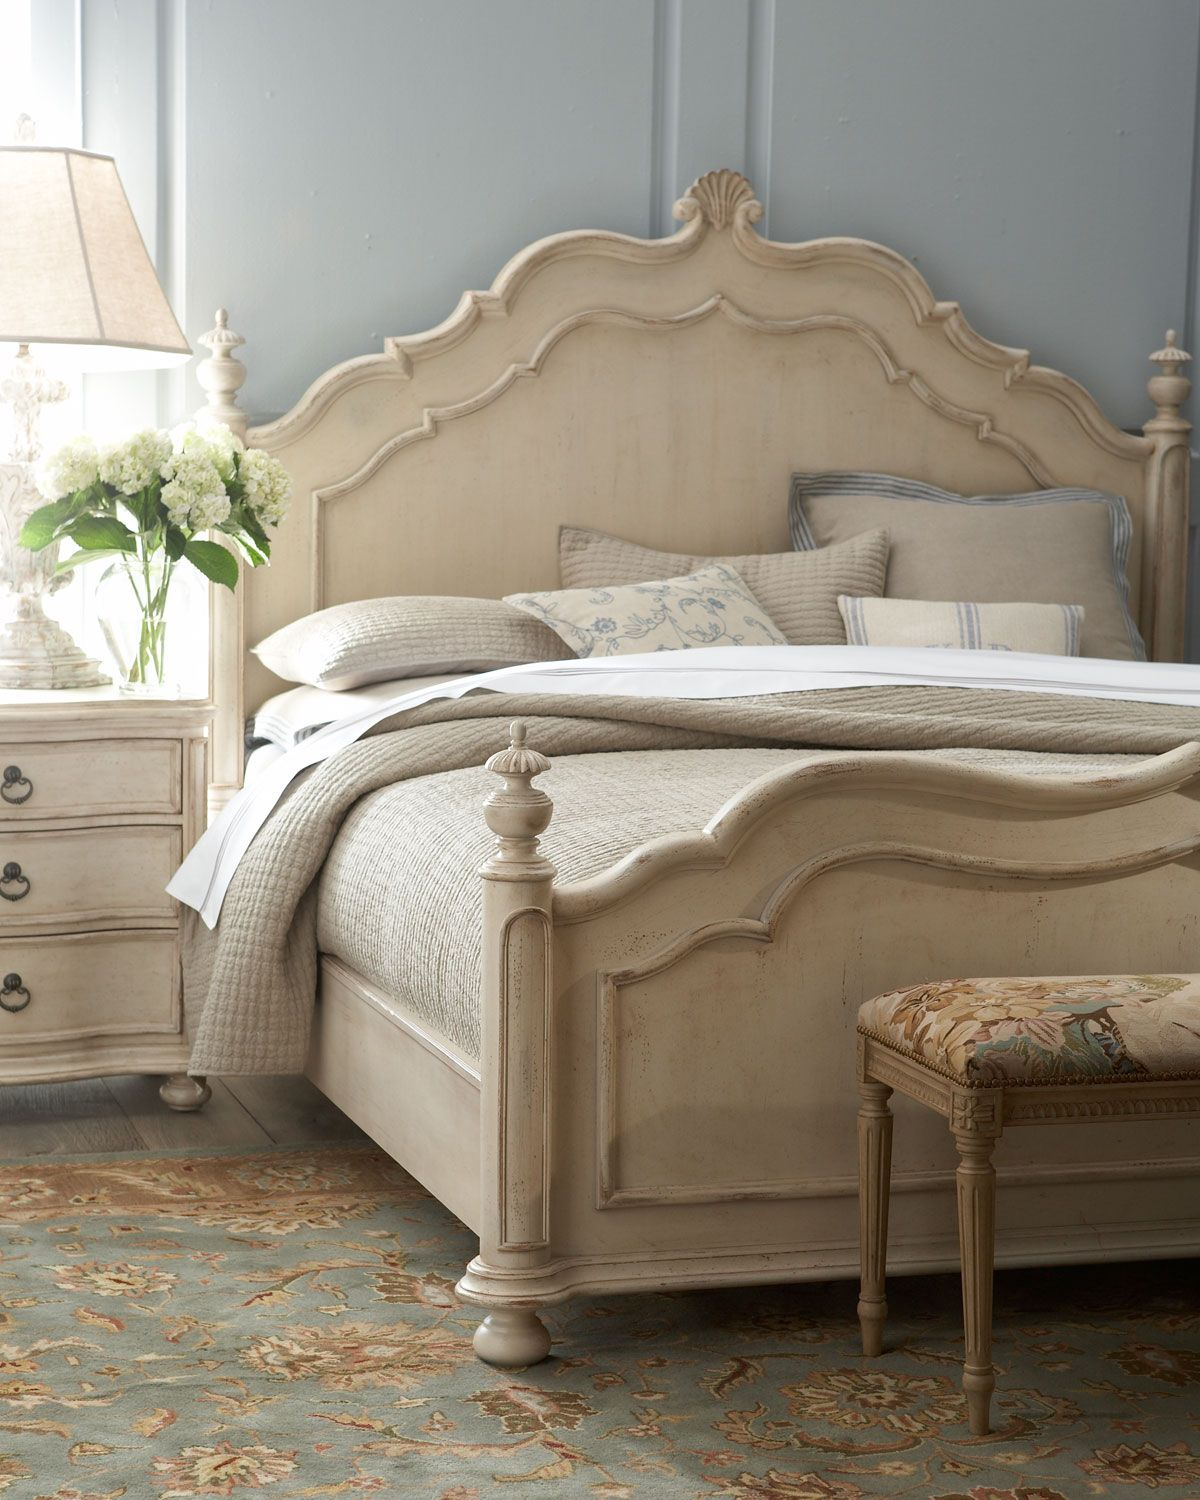 Distressed Finish Cream Furniture Browns Blues And Greys In Accessories For Neutral Look Caroline Tristan Bedroom